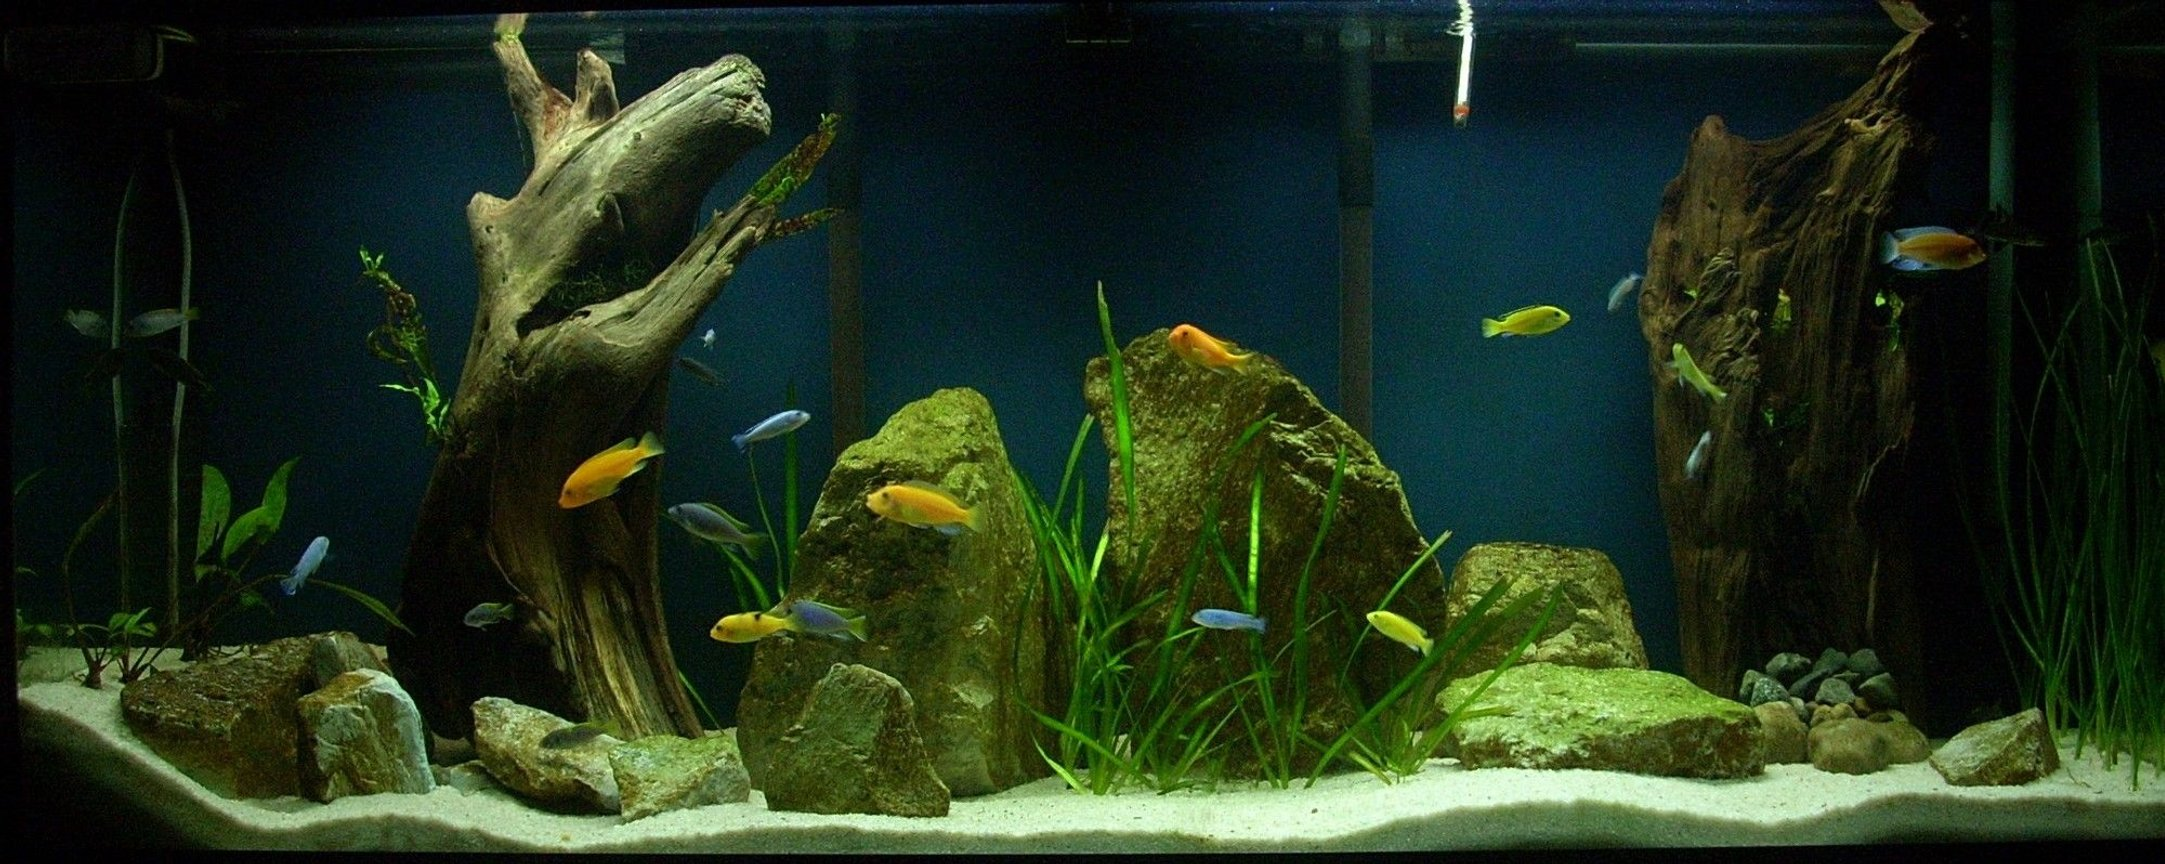 120 gallons freshwater fish tank (mostly fish and non-living decorations) - 120 Gallon Mbuna Tank